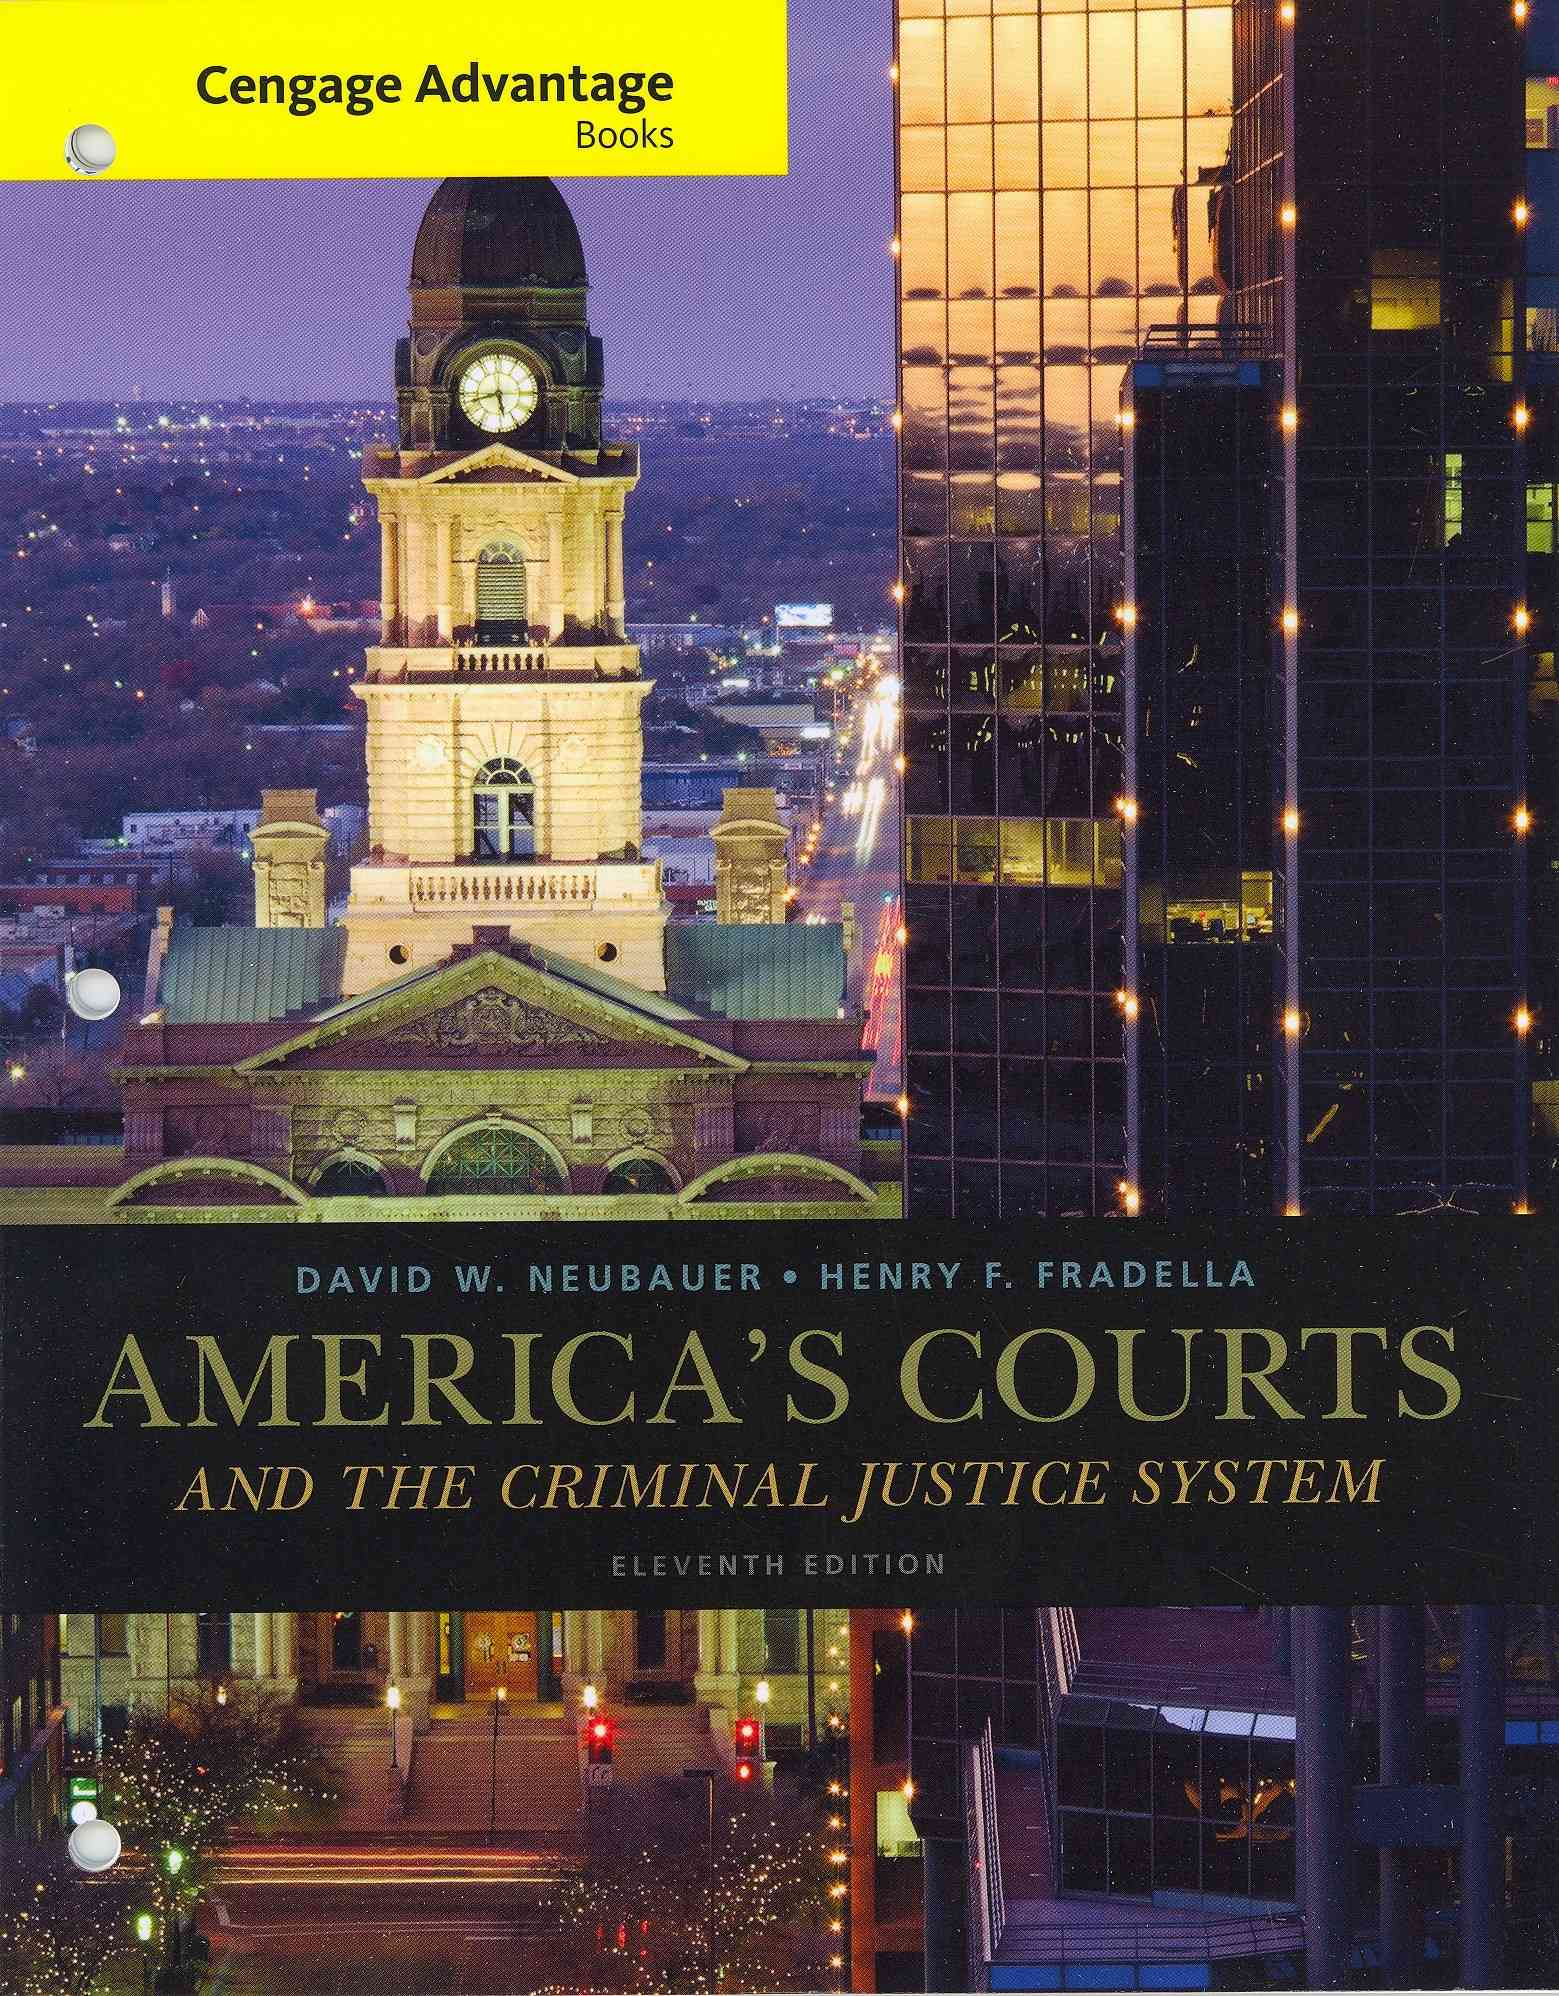 America's Courts and the Criminal Justice System By Neubauer, David W./ Fradella, Henry F.